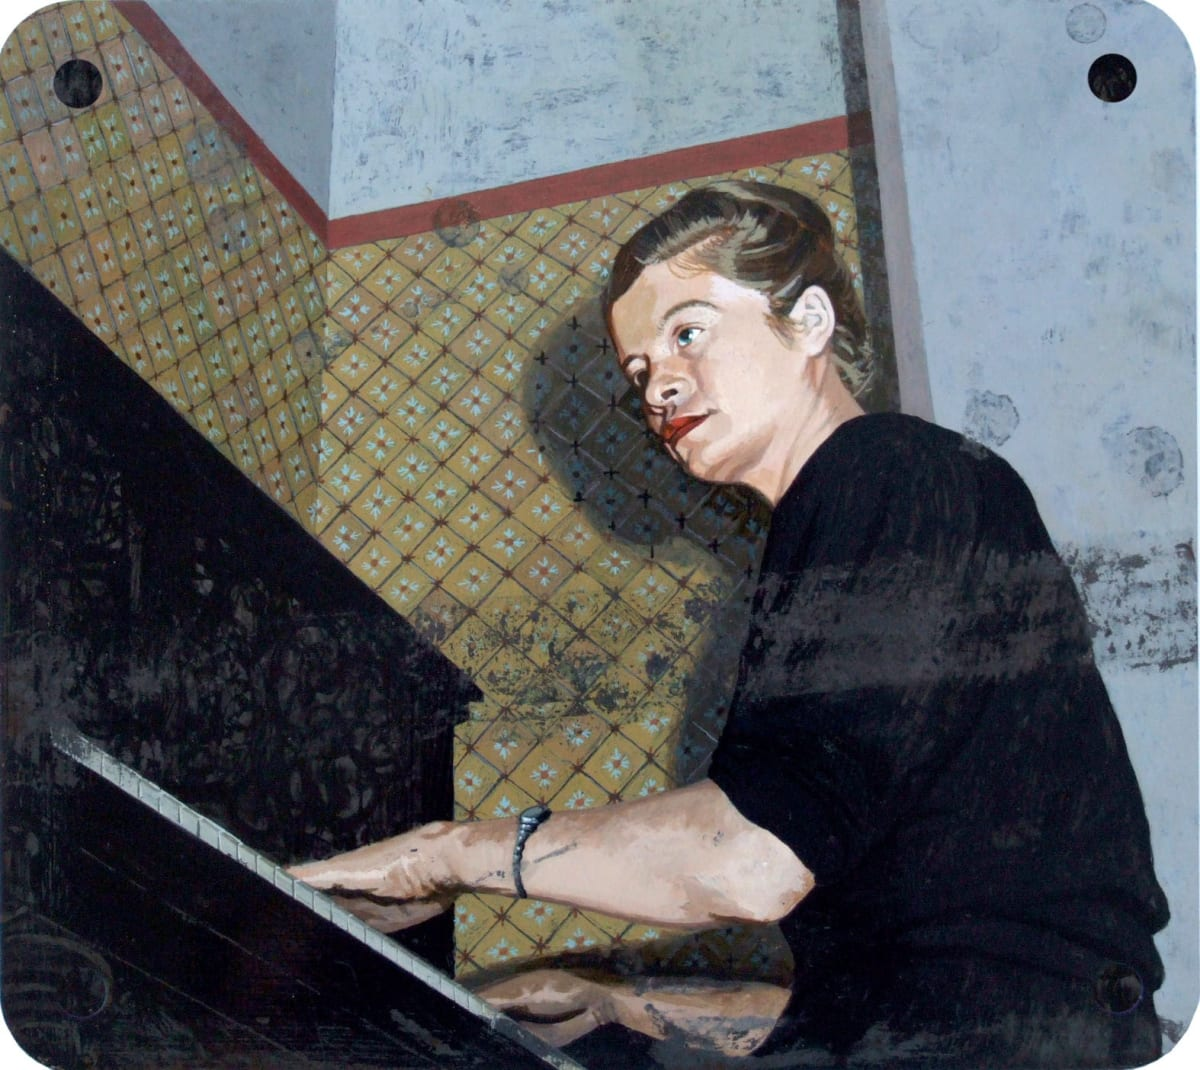 Catherine Barron Piano Acrylic ink on sheet metal 26 x 29 cm